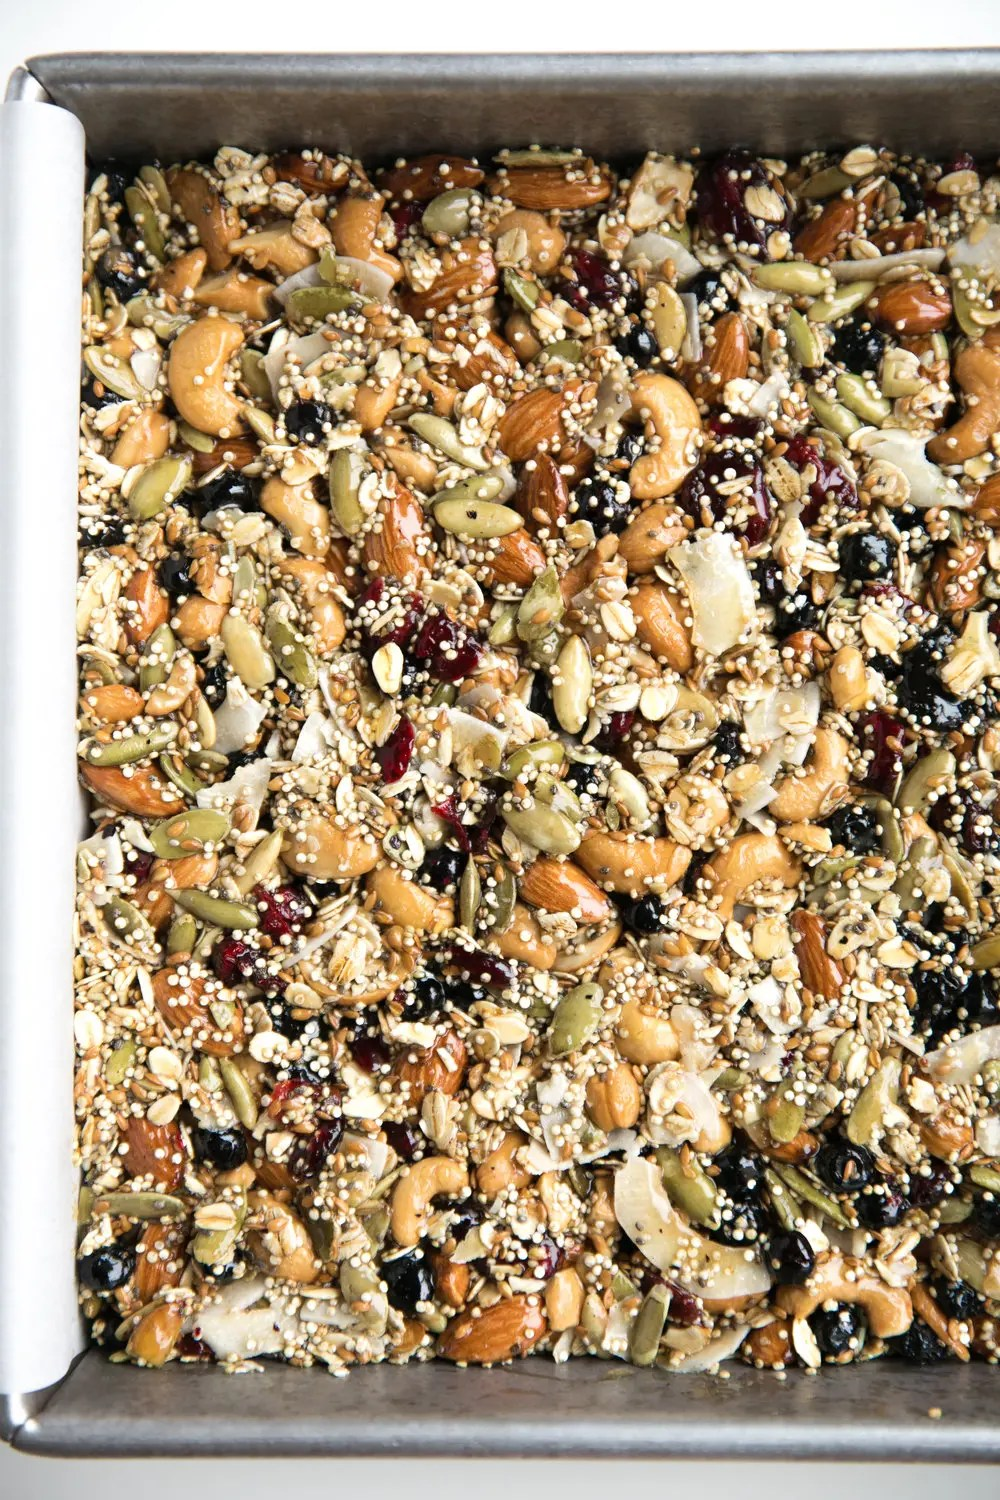 Packed full of nuts, seeds, dried fruit, and oats, these perfectly sweet Superfood Oat Bars are gluten-free, dairy-free, and make the best snack ever!